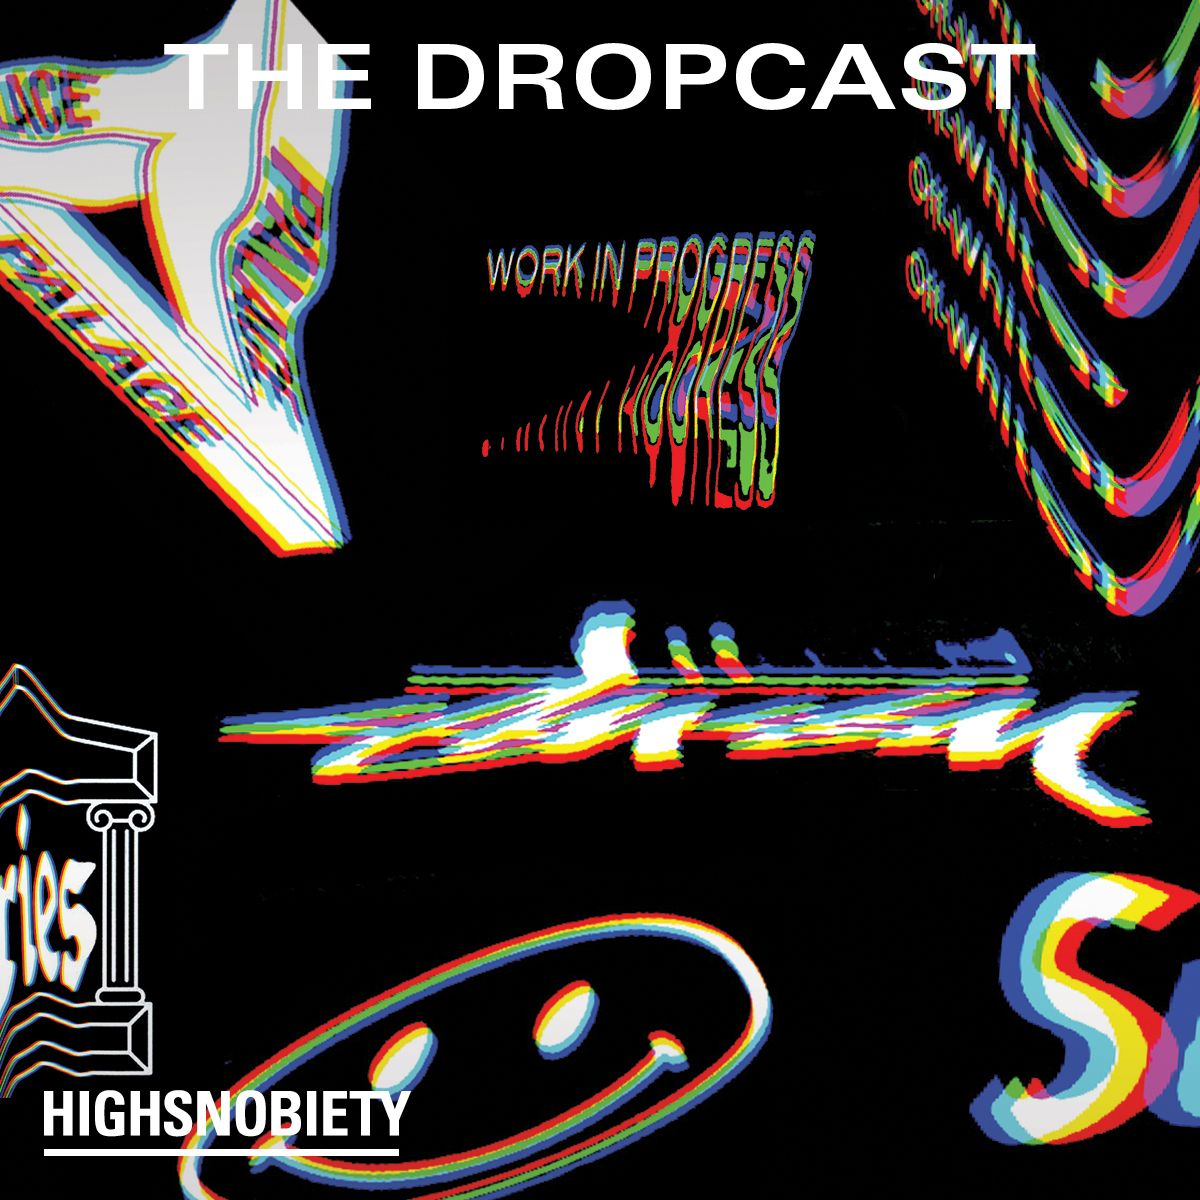 The Dropcast #61: Erik Ellington & Bobby Hundreds Son Us for